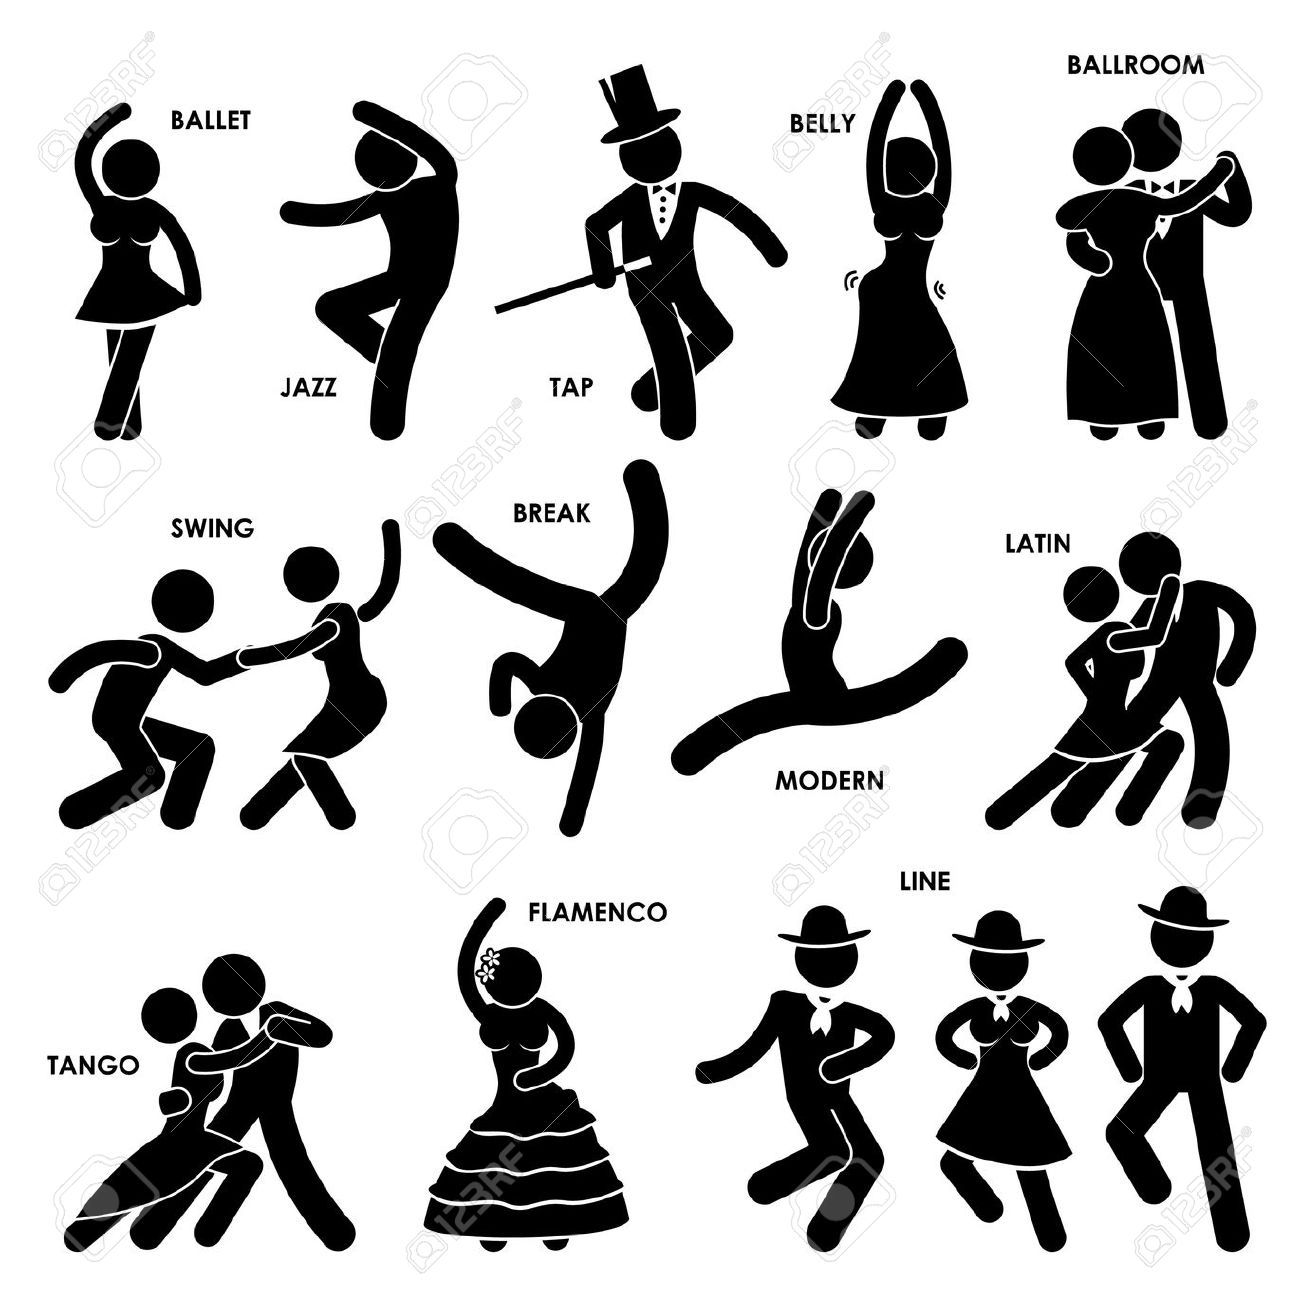 dance stock vector illustration and royalty free dance clipart [ 1300 x 1300 Pixel ]